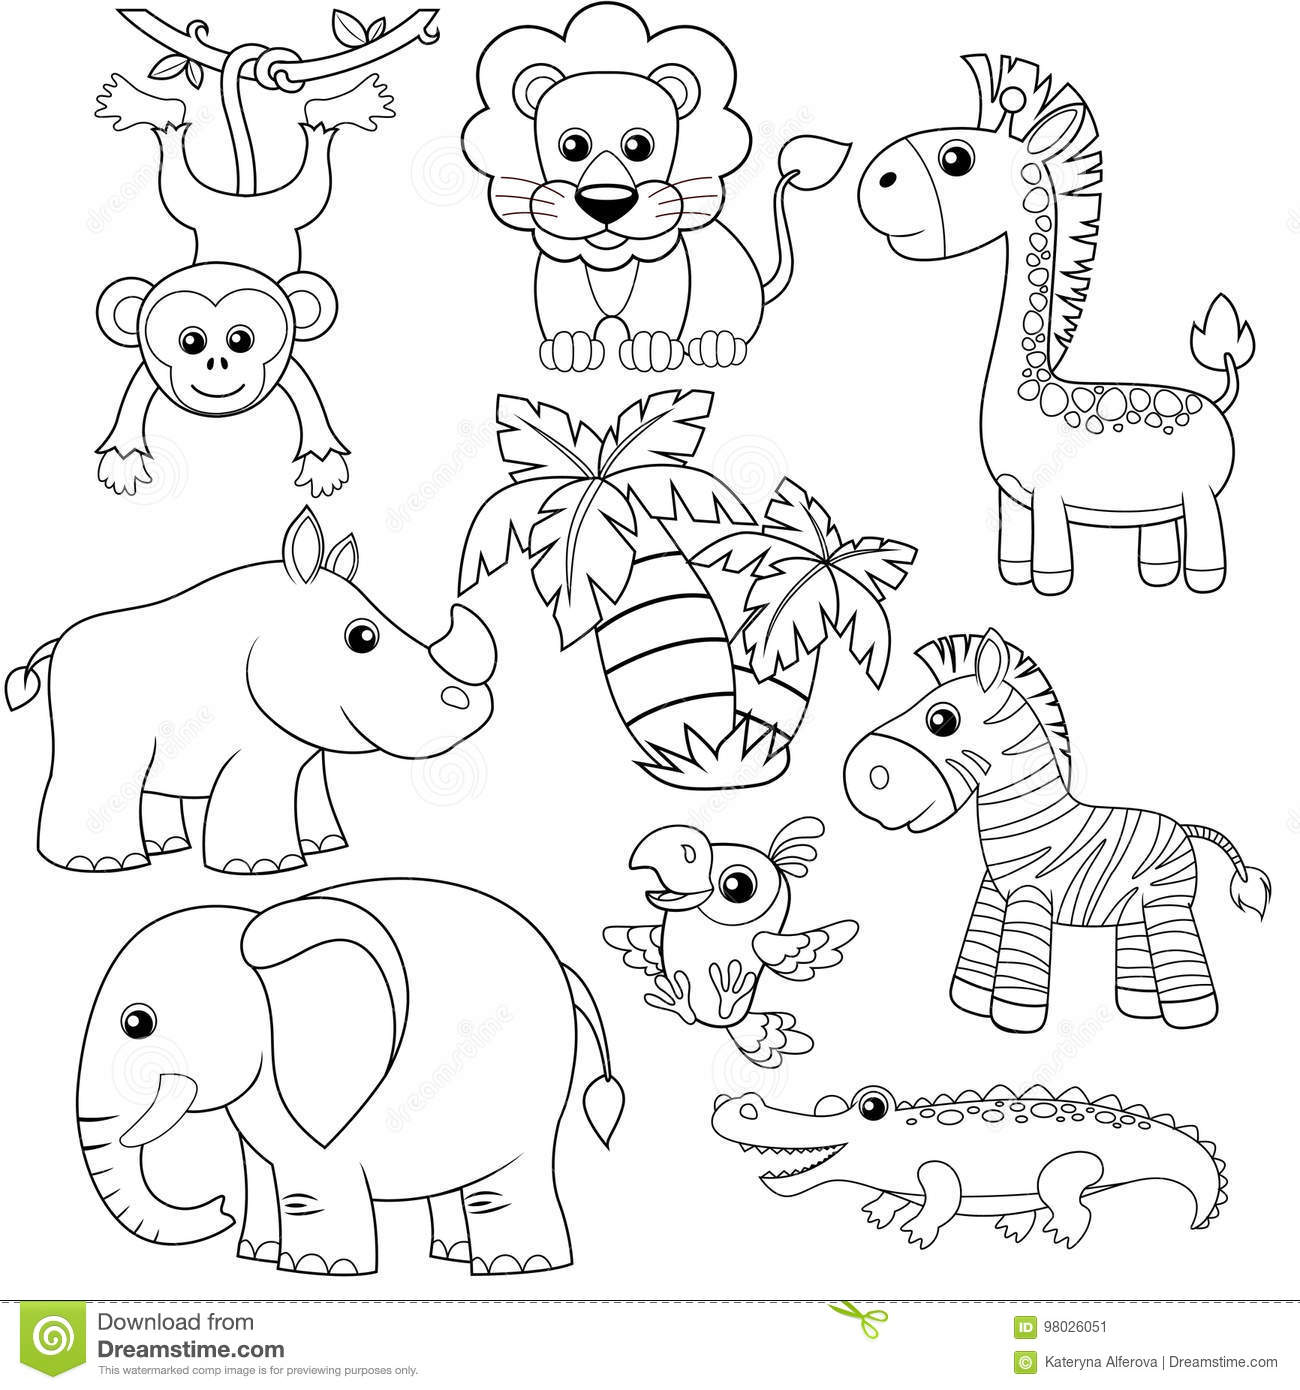 Label The Elephant Worksheet